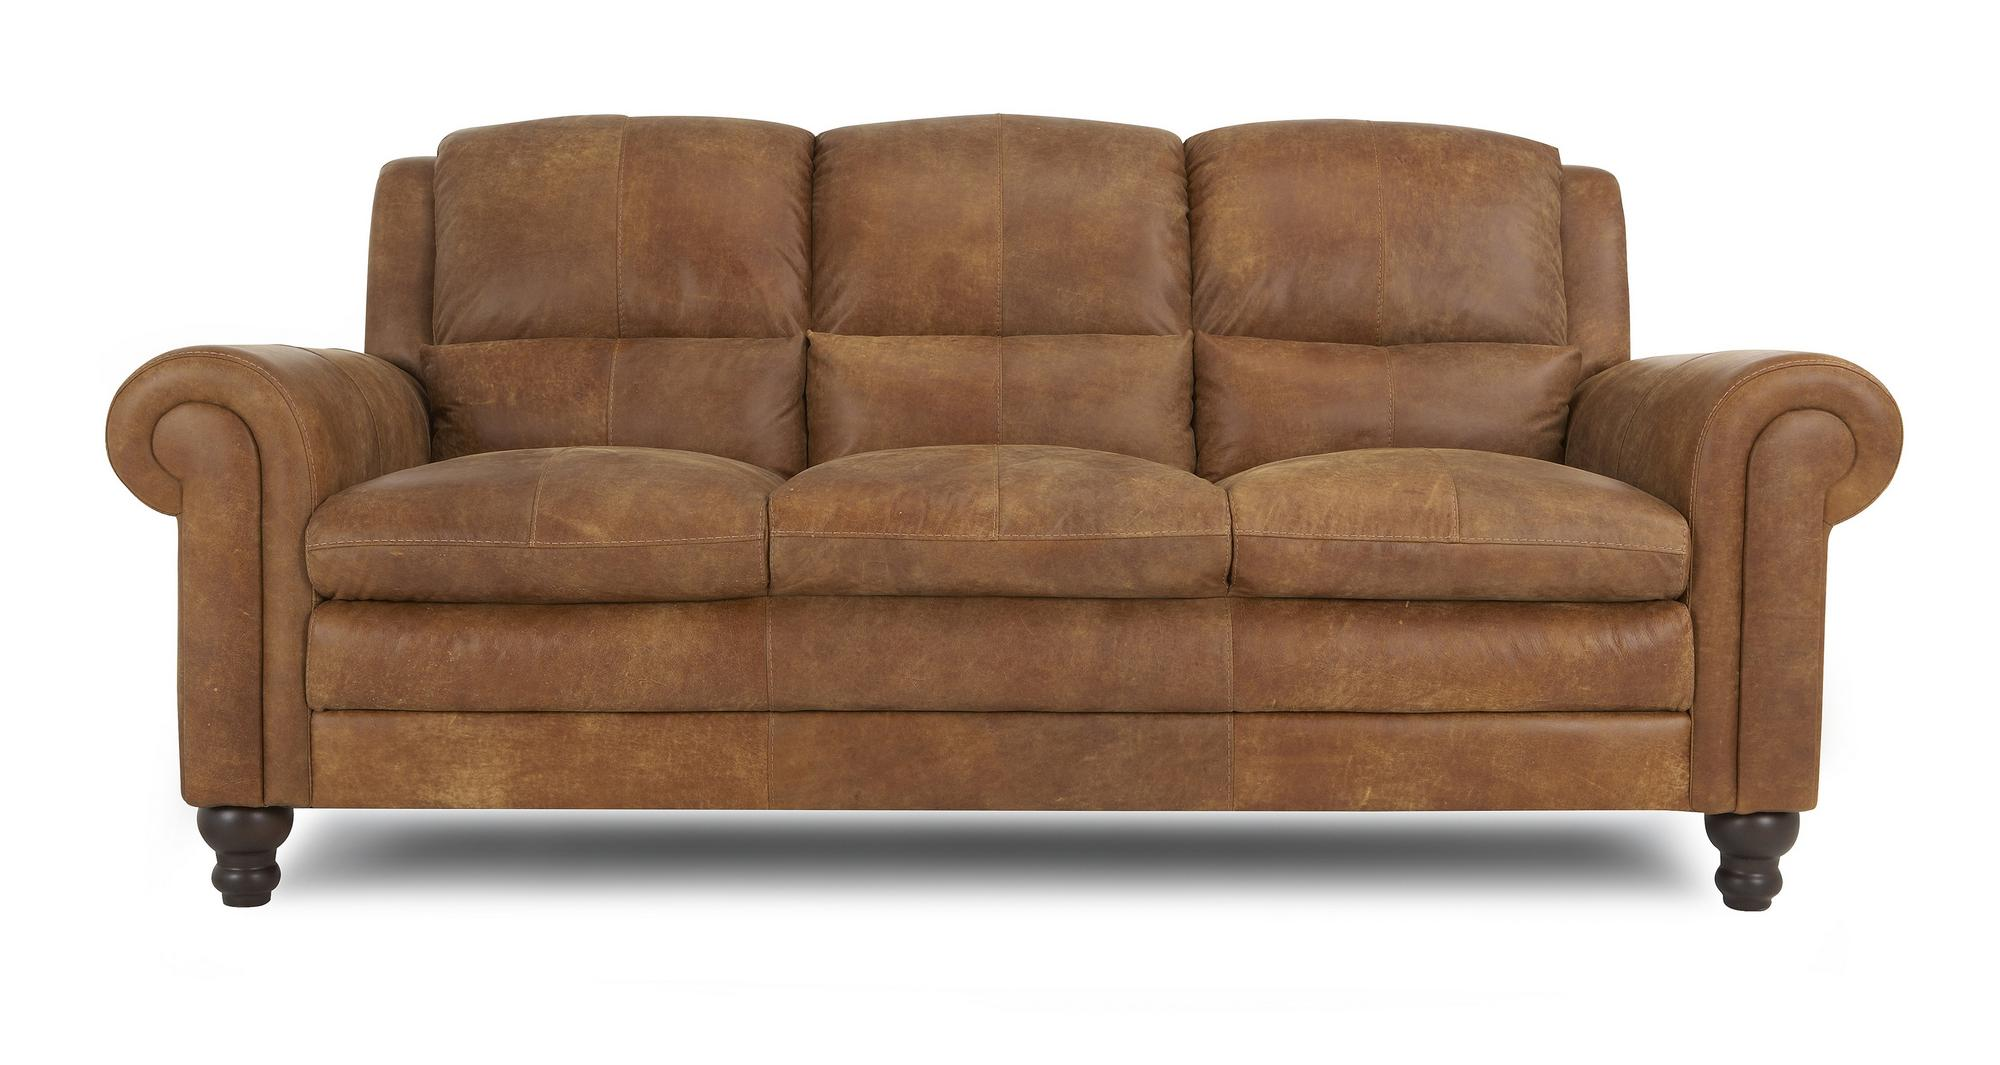 Dfs 3 seater leather sofa 28 images dfs navona couch brown leather settee 3 seater power Dfs 4 seater leather sofa